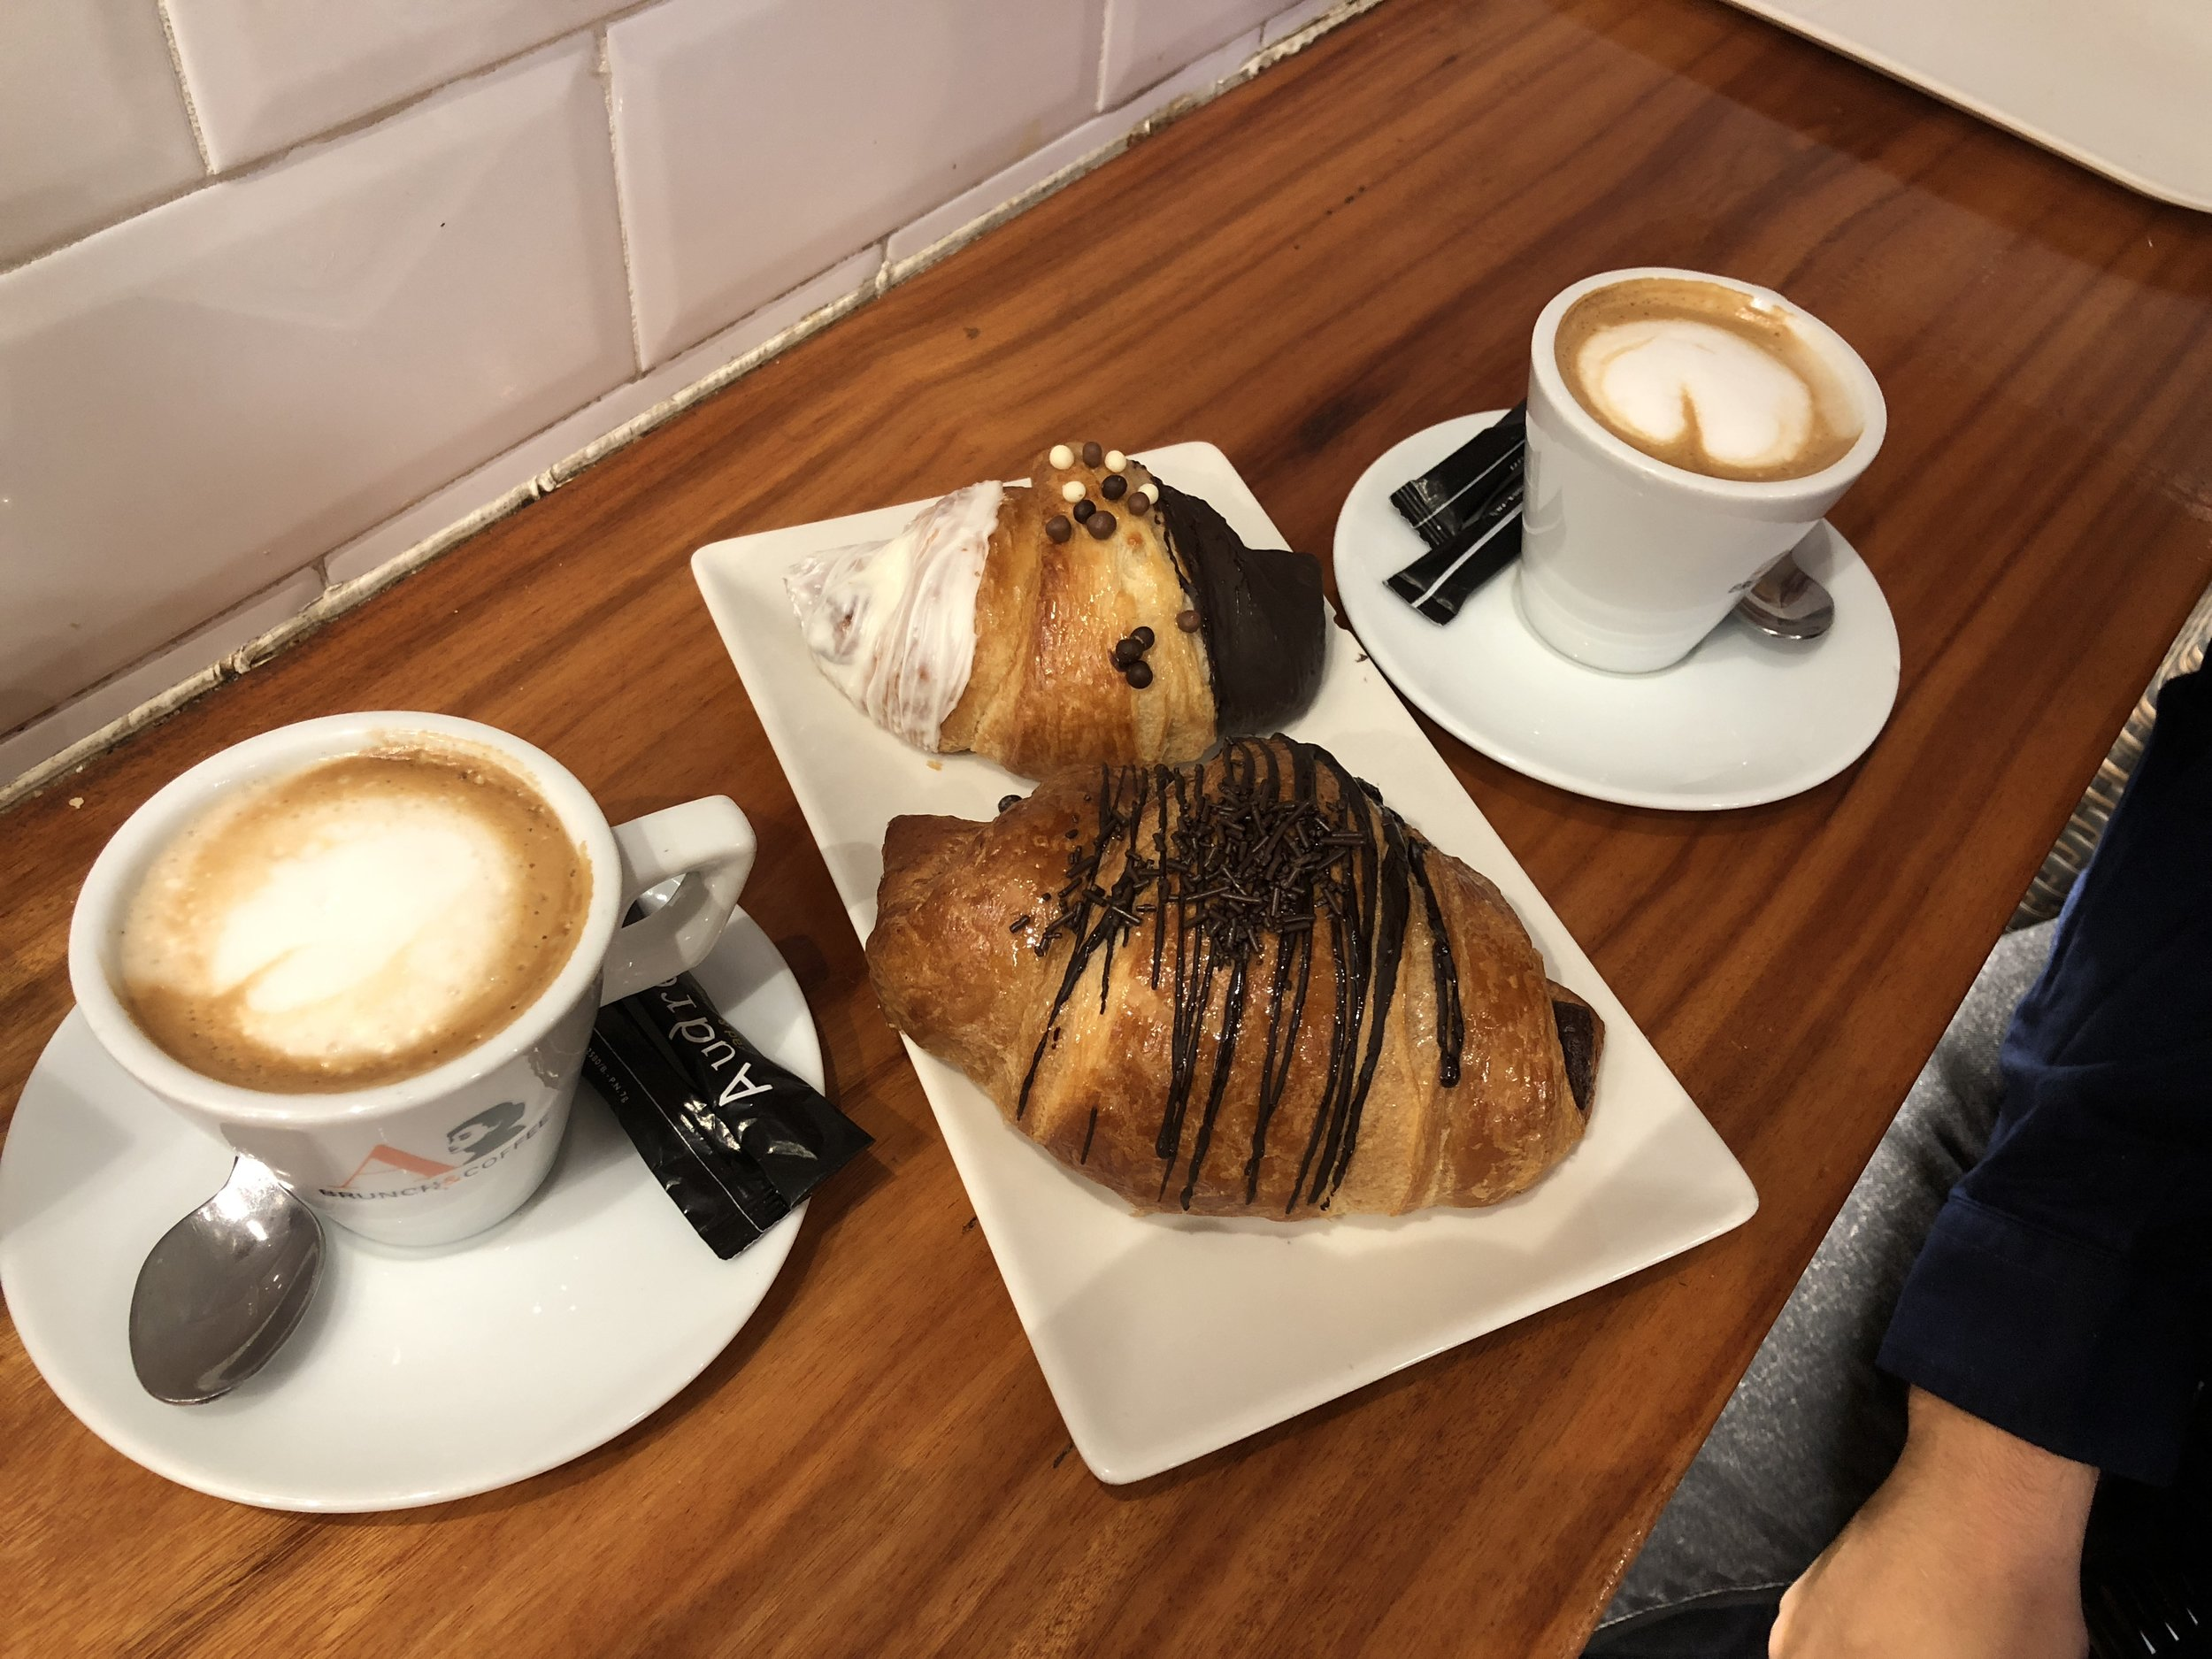 Breakfast at a local bakery